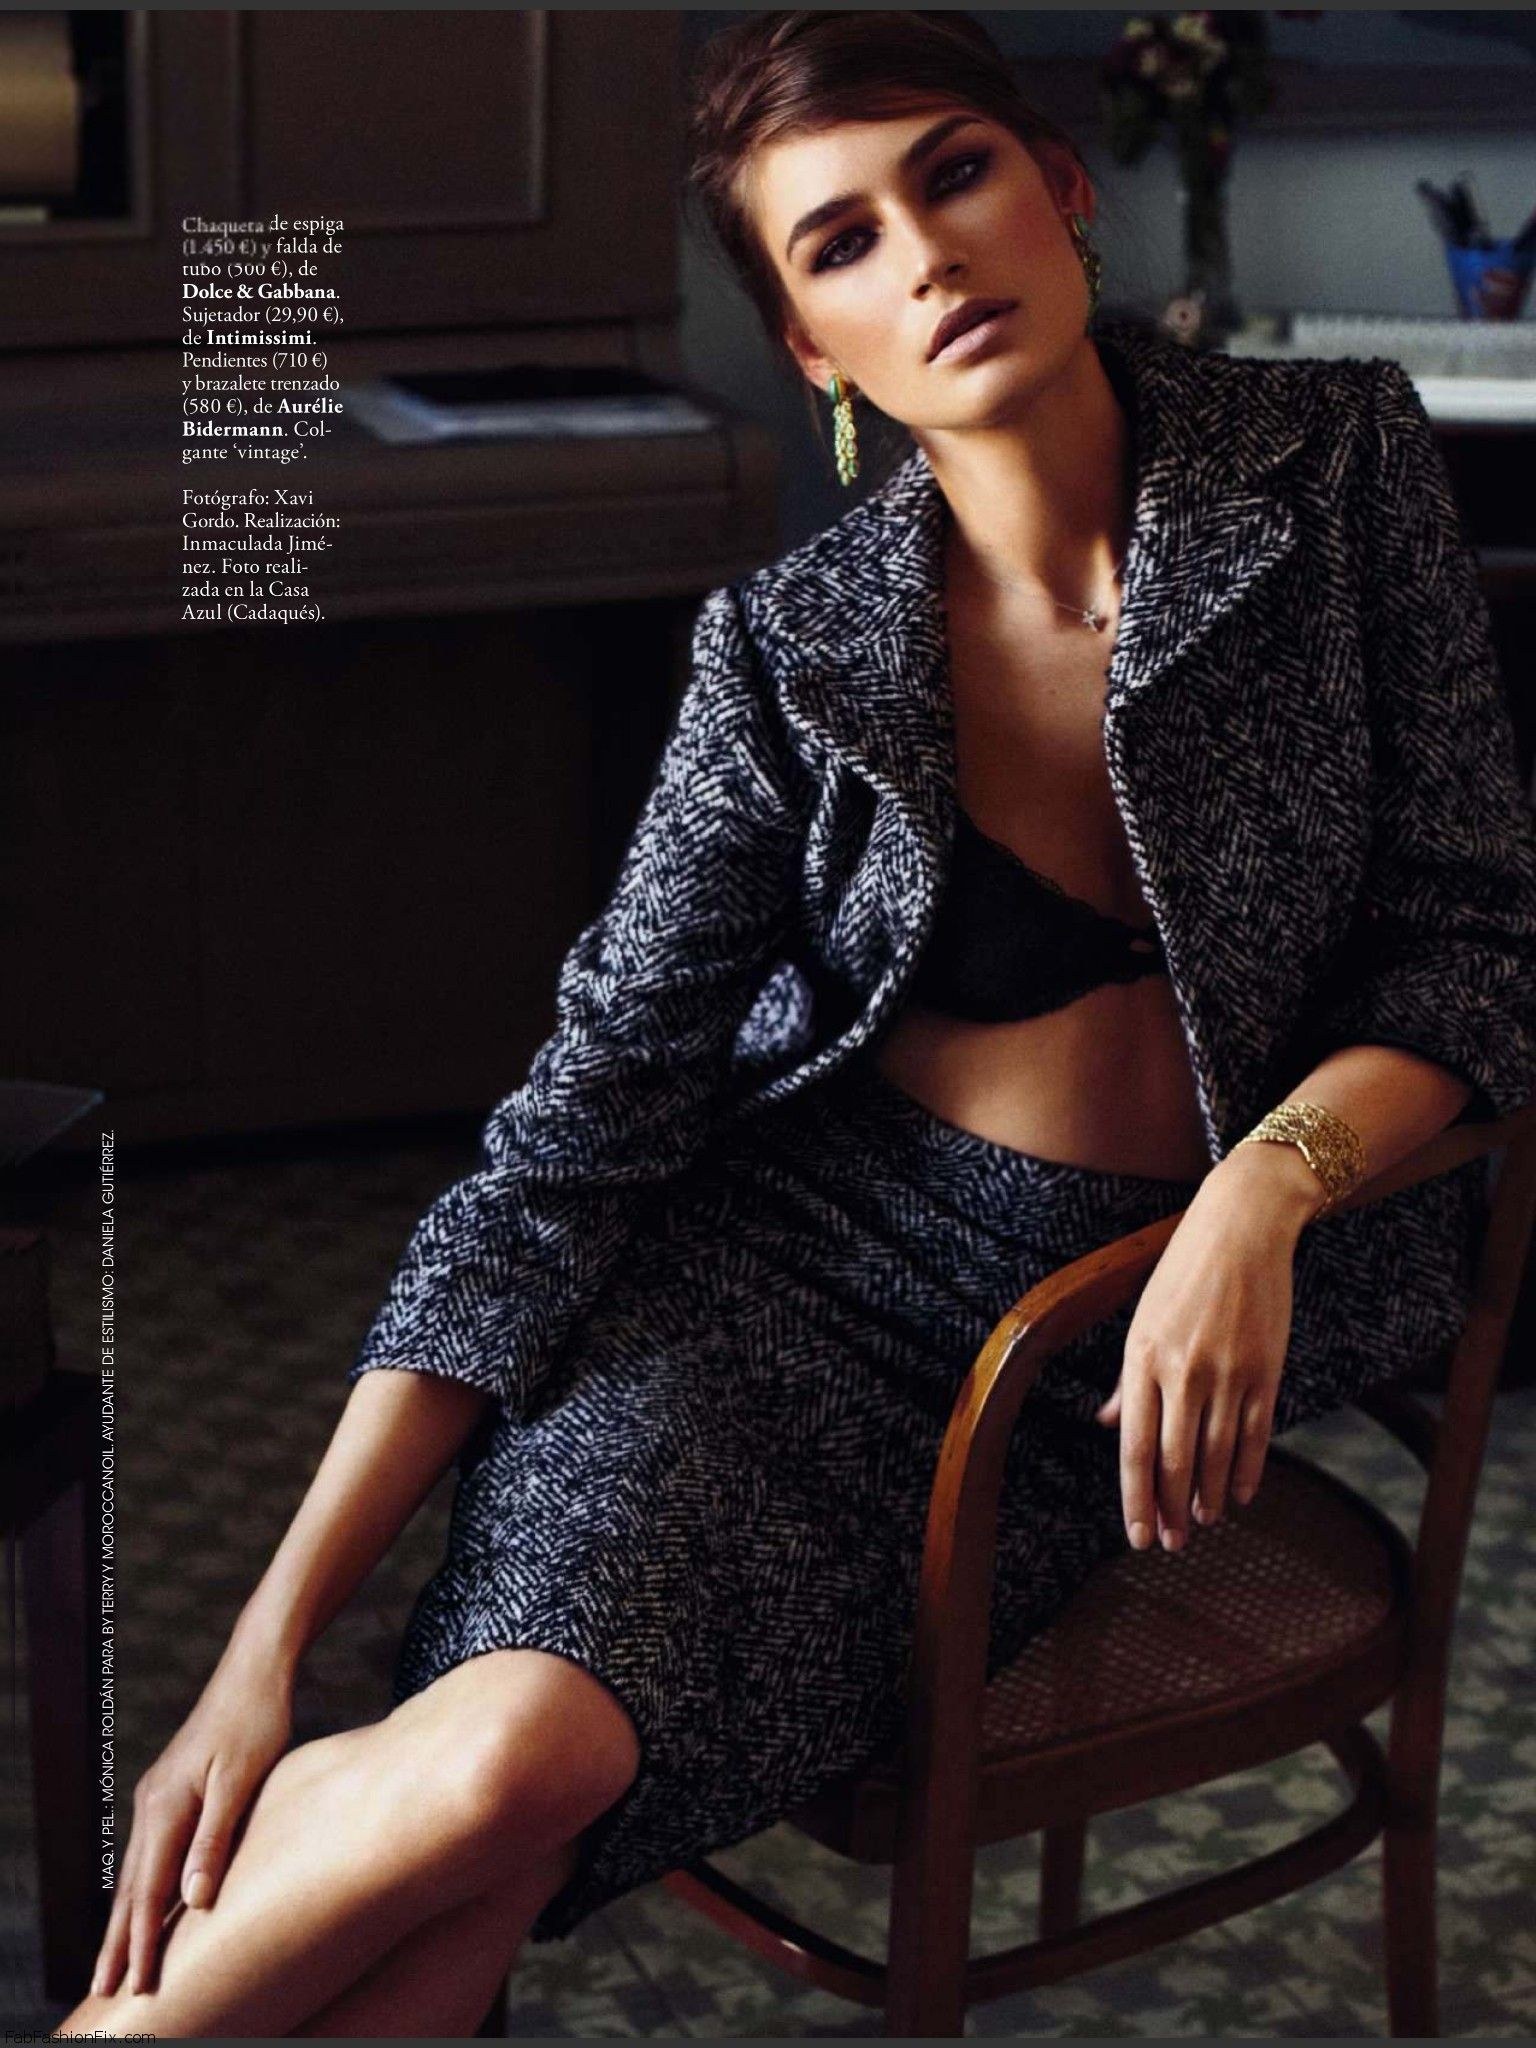 fashion_scans_remastered-eugenia_volodina-elle_espana-september_2013-scanned_by_vampirehorde-hq-11